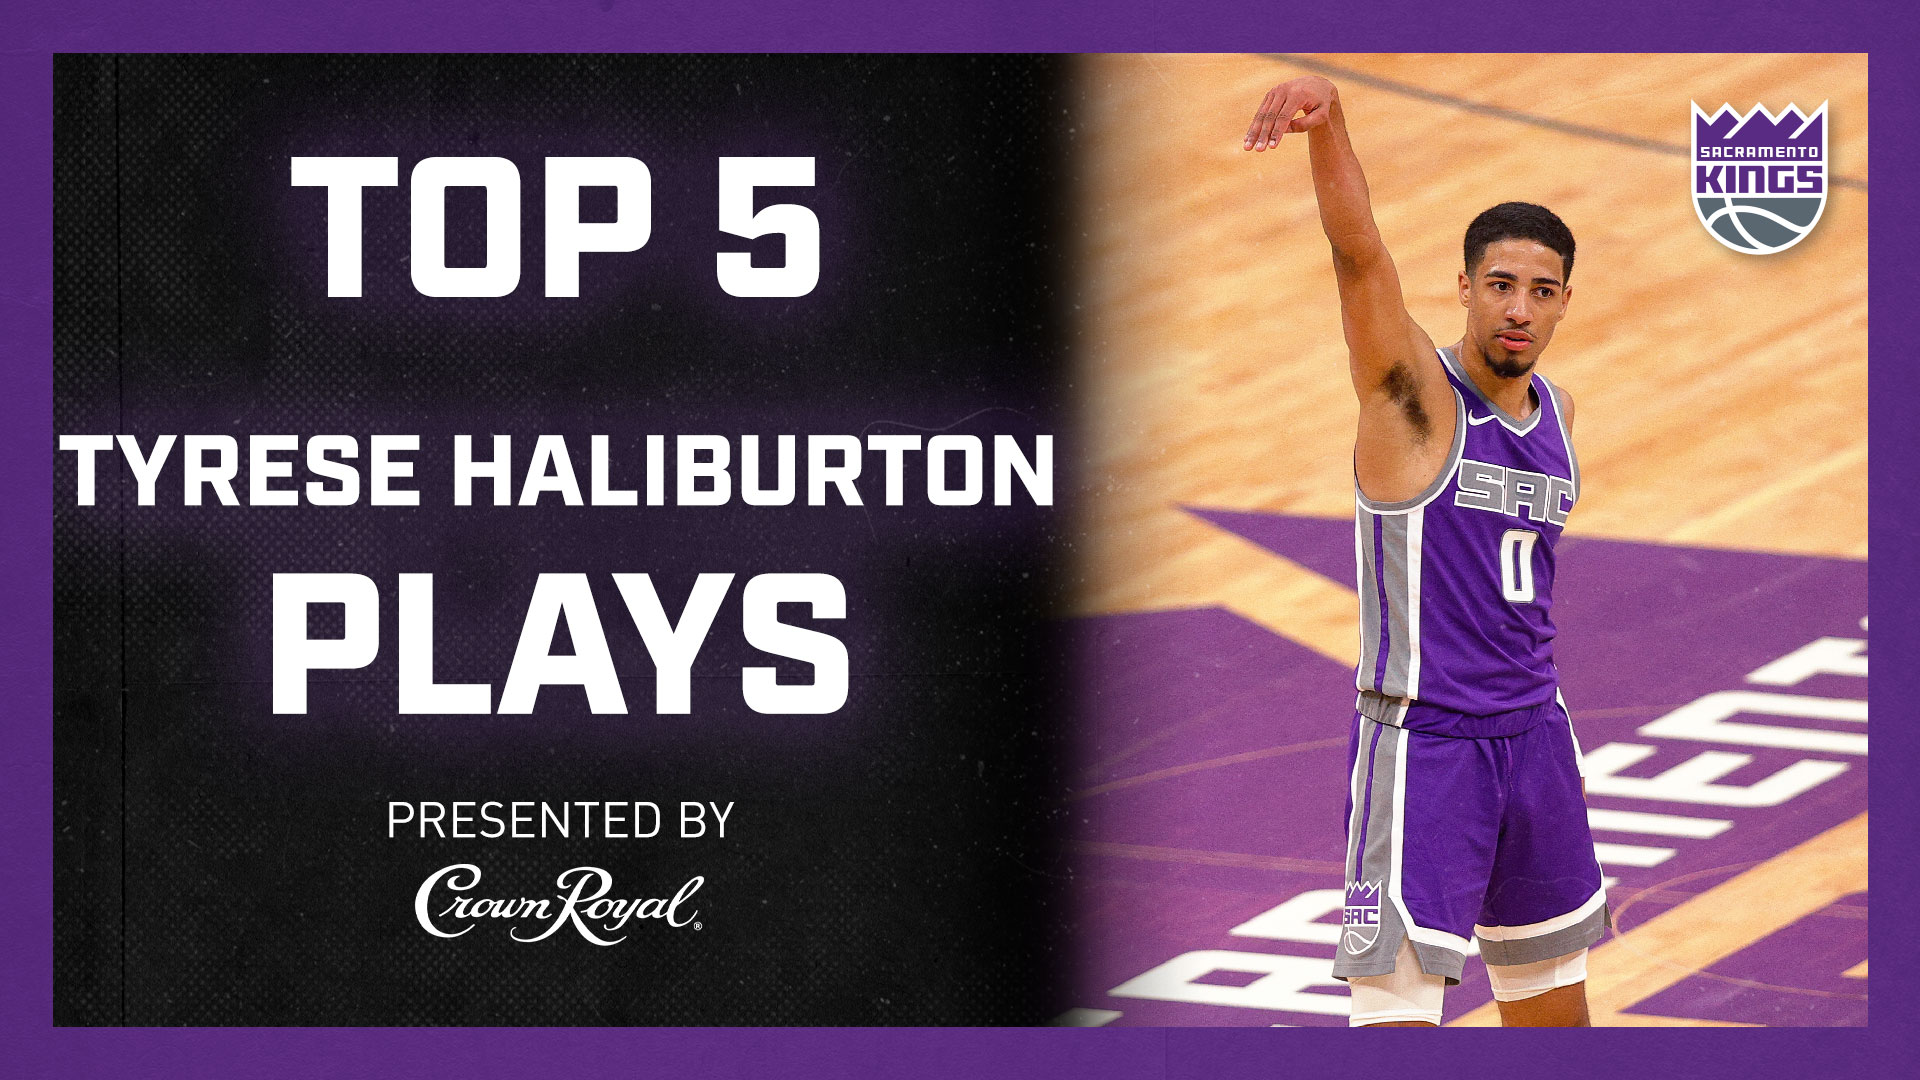 Top 5 Tyrese Haliburton Plays